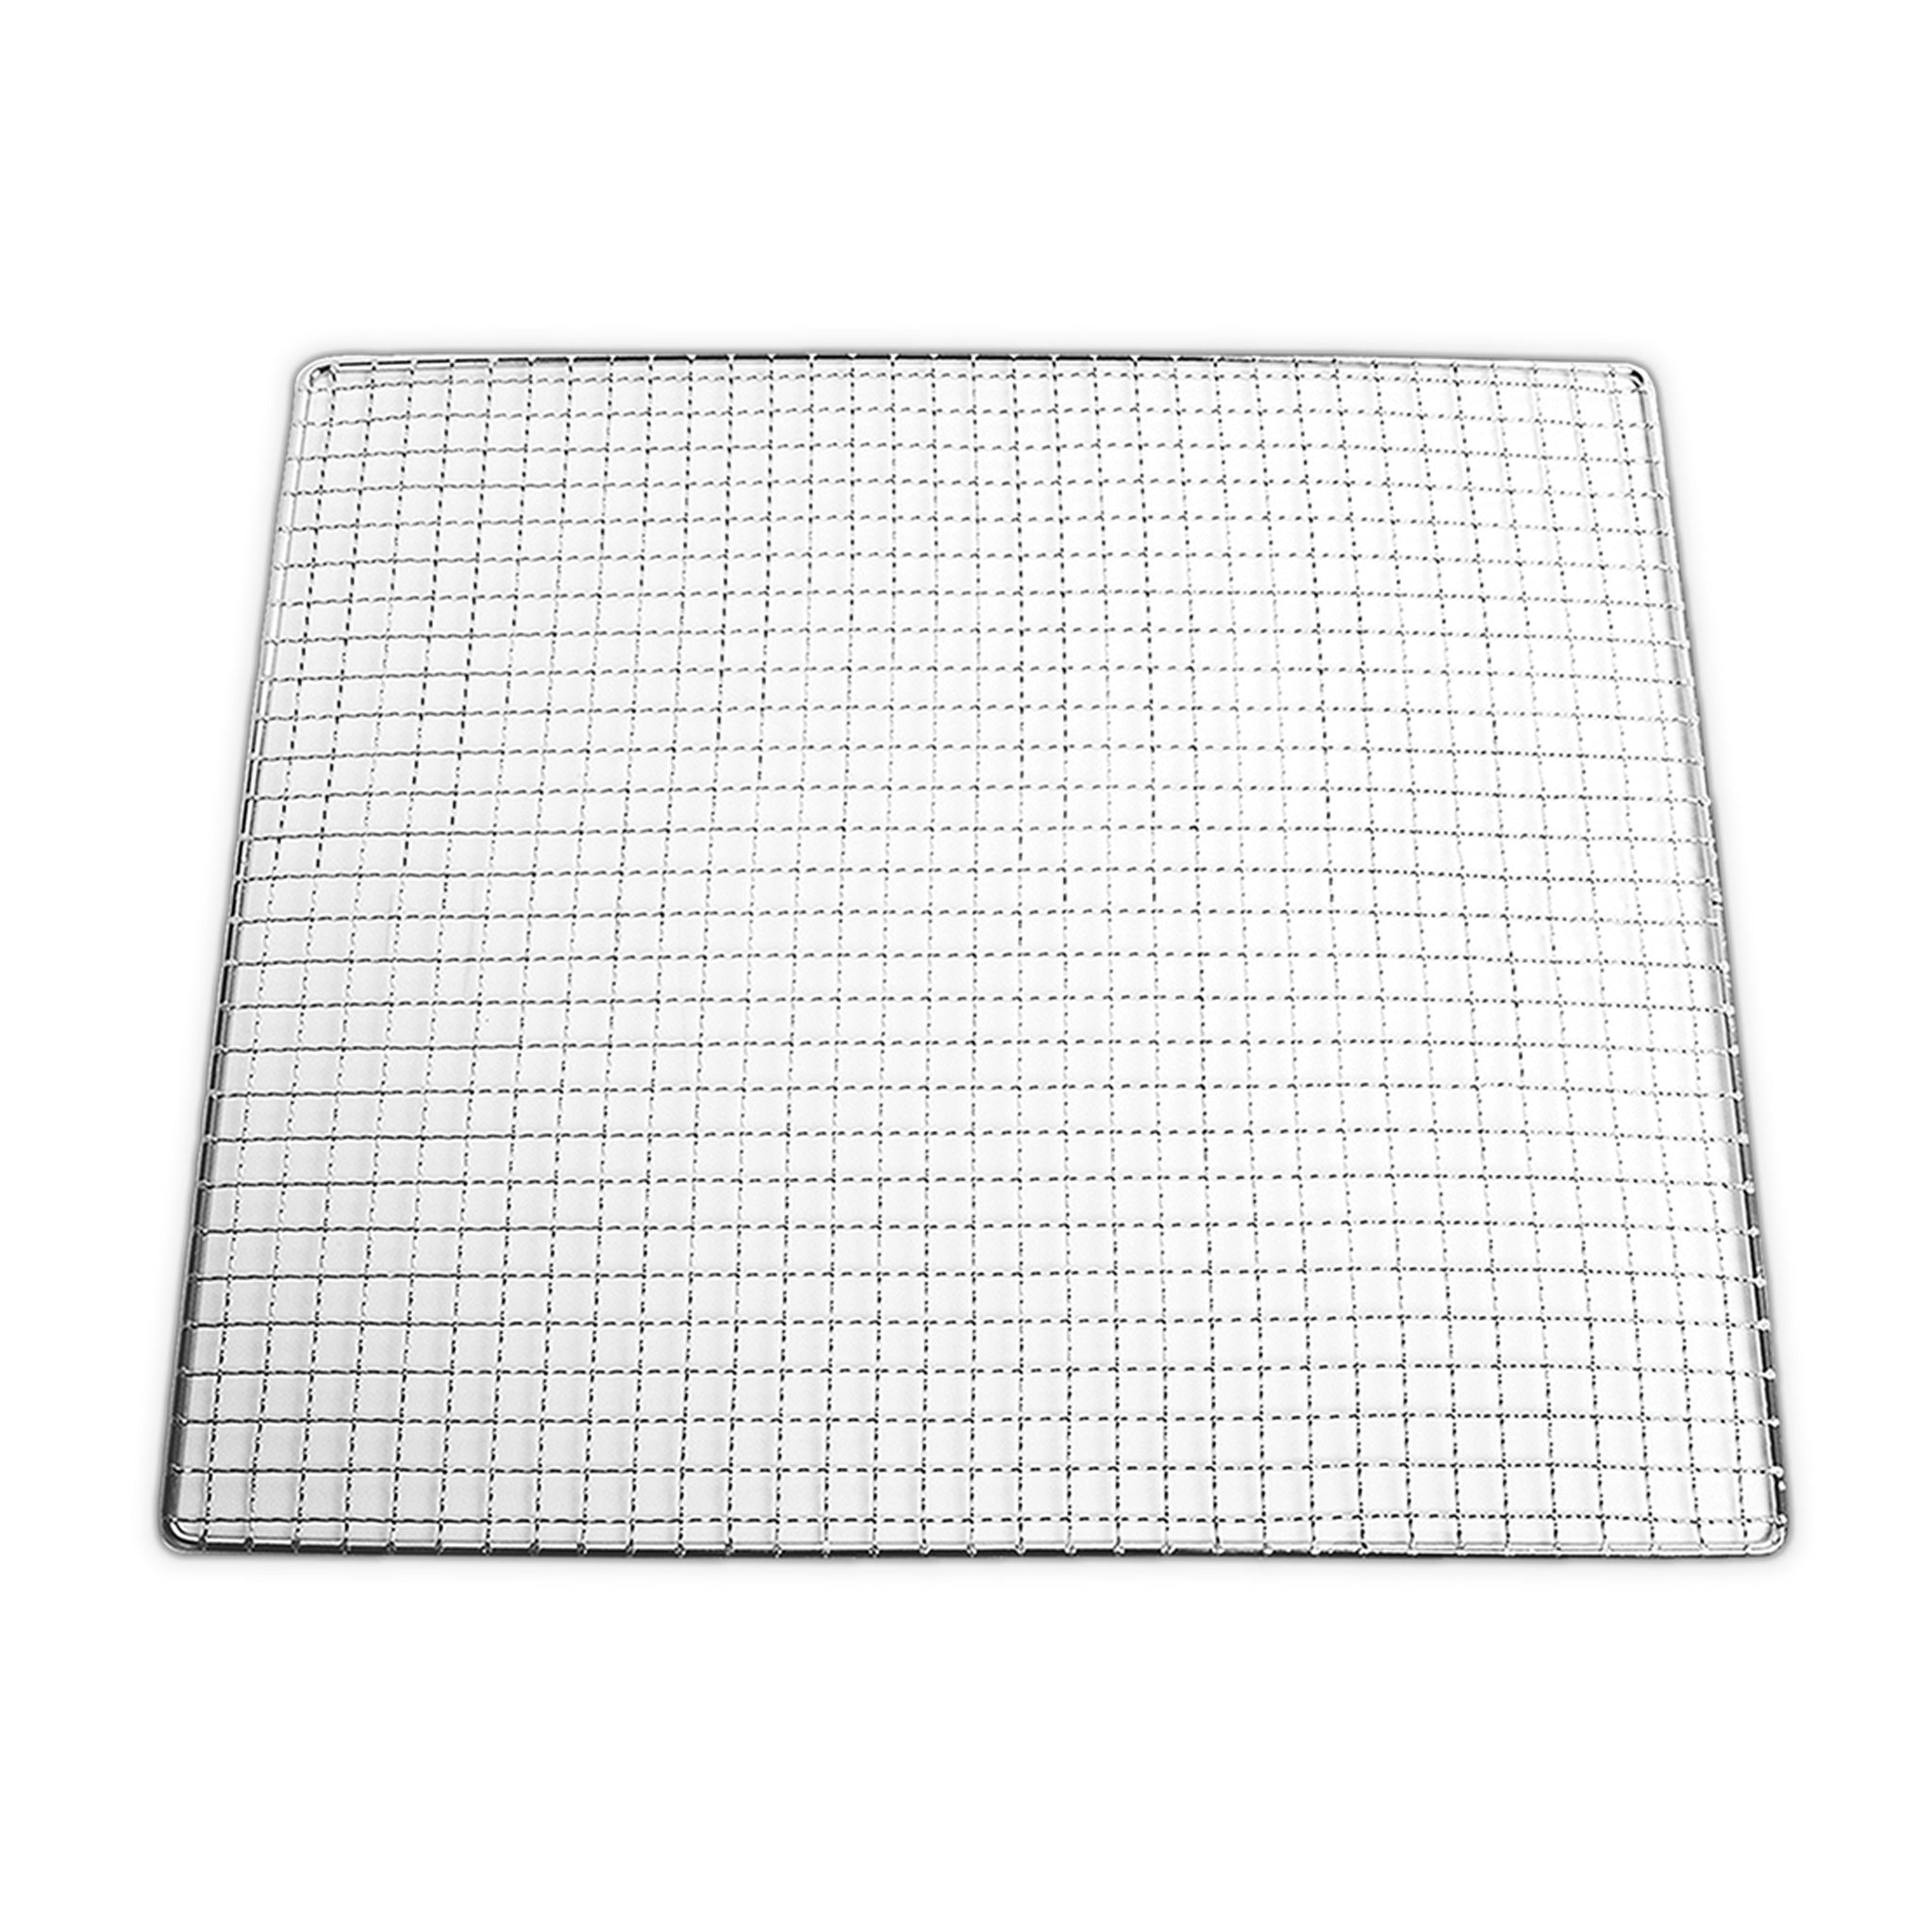 Stainless steel mesh dehydrating tray for the Sedona® Classic, Combo, Express, and Supreme Dehydrators.